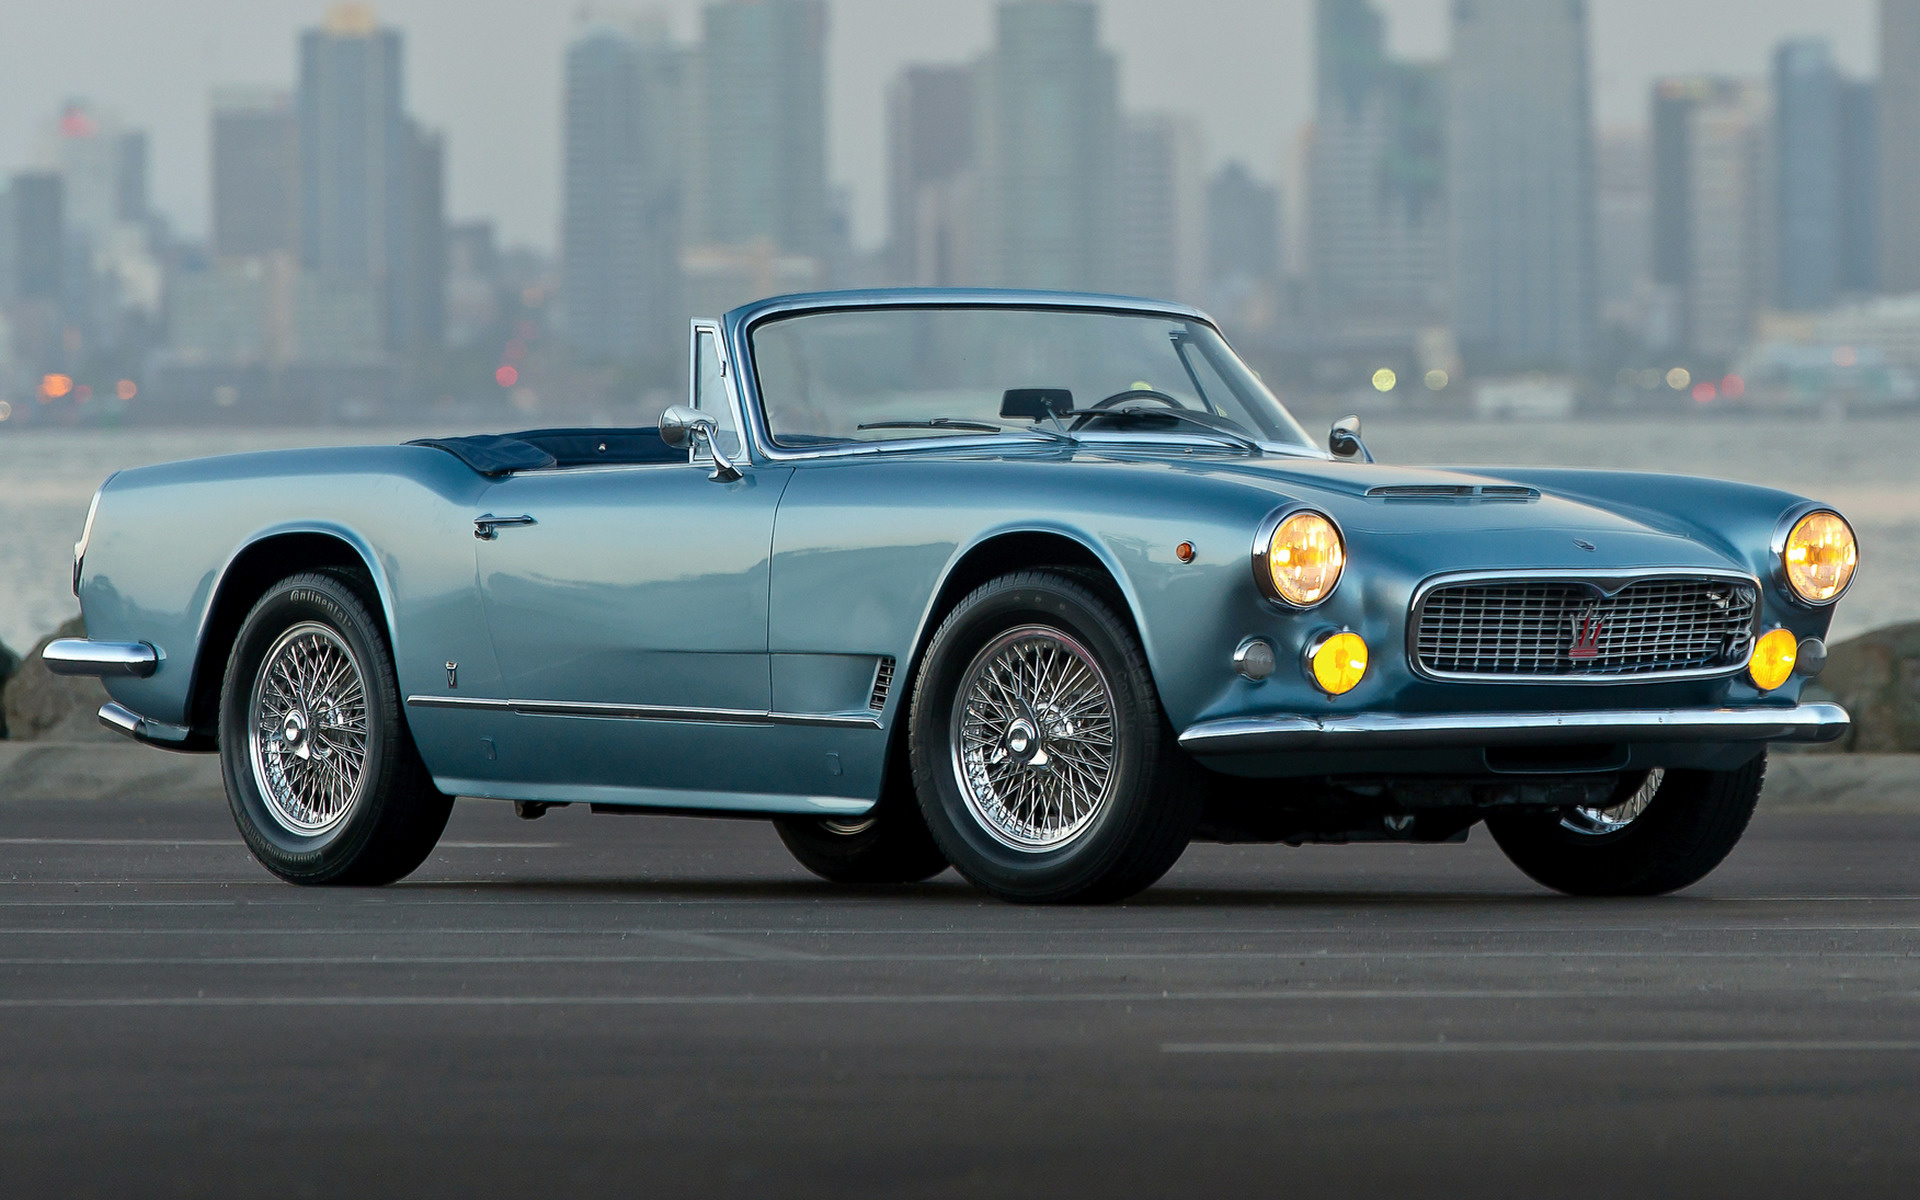 1960 Maserati 3500 GT Spyder - Wallpapers and HD Images ...